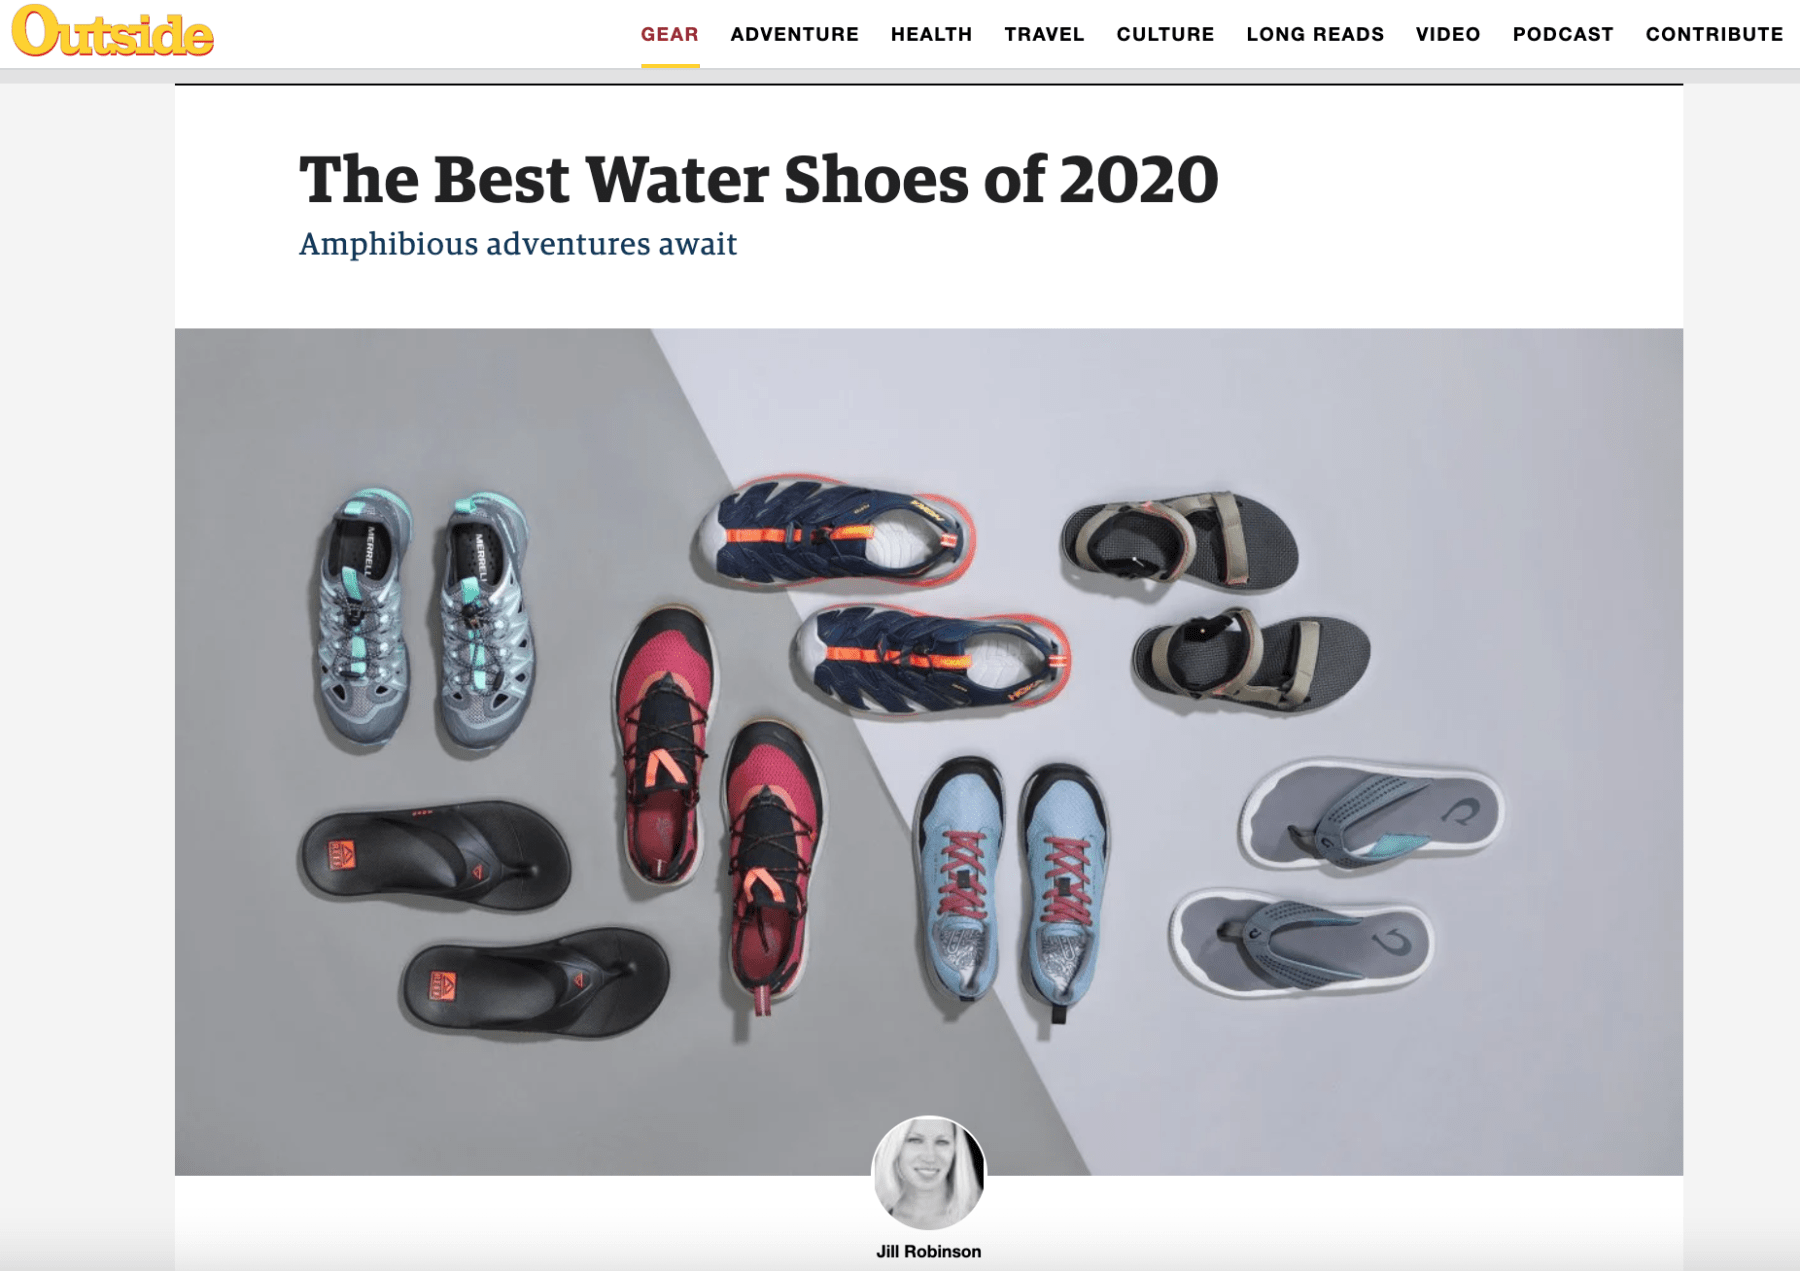 Image of Outside Magazine's website page with The Best Water Shoes of 2020 and 8 pairs of shoes sitting on a white and gray background.